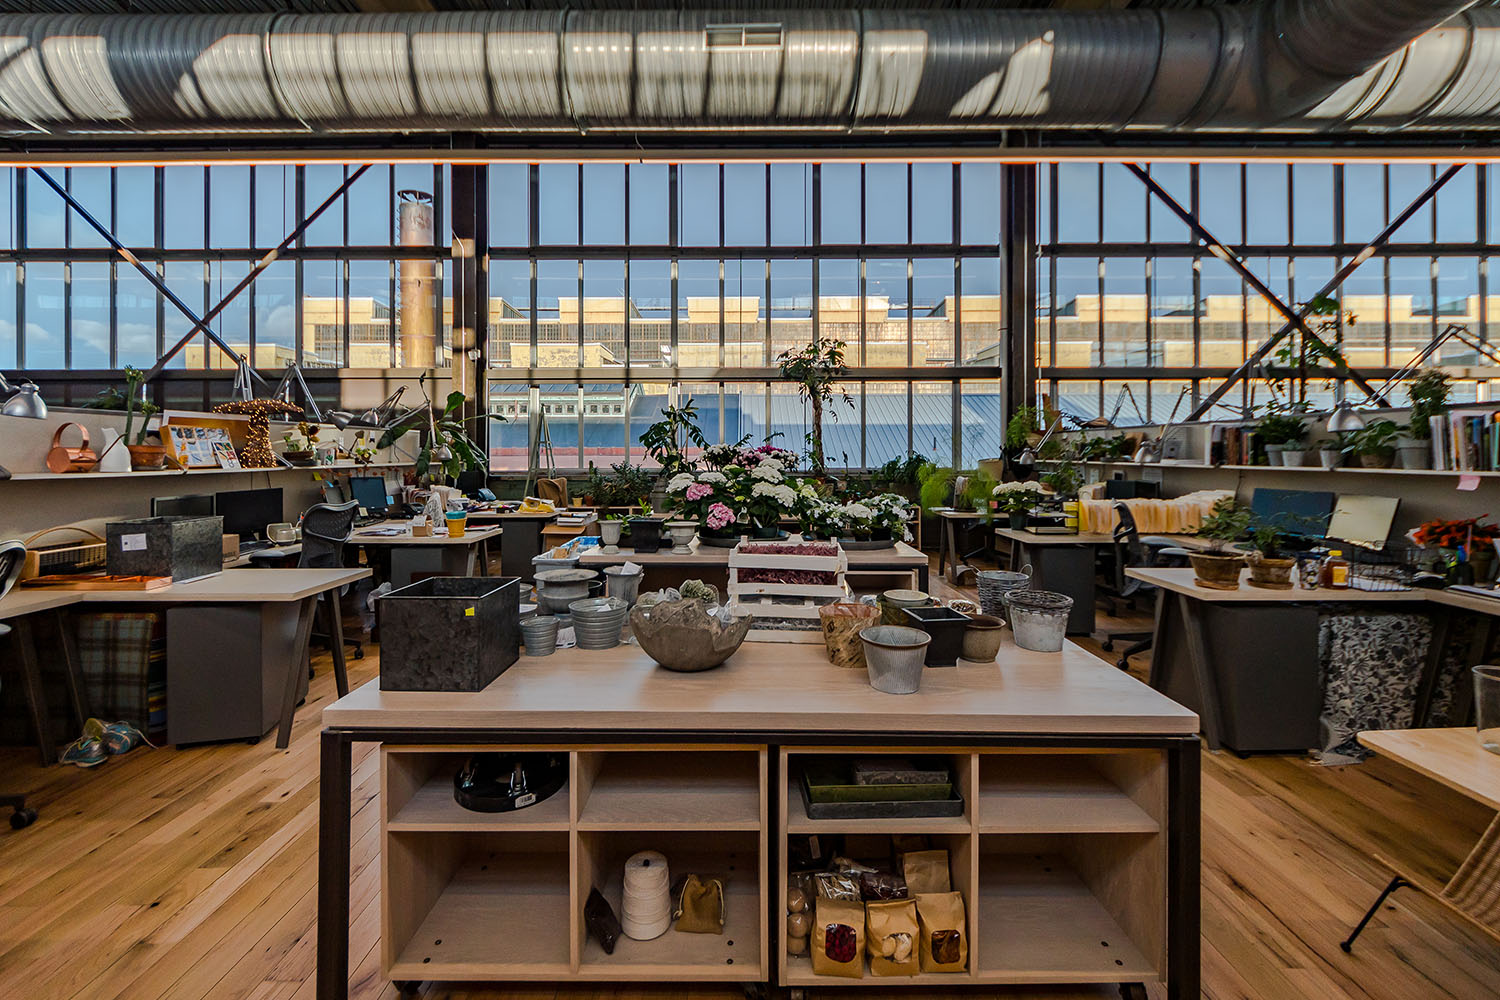 NewStudio Architecture collaborated with URBN to design Navy Yard Building 18 Annex with staging areas for Terrain staff